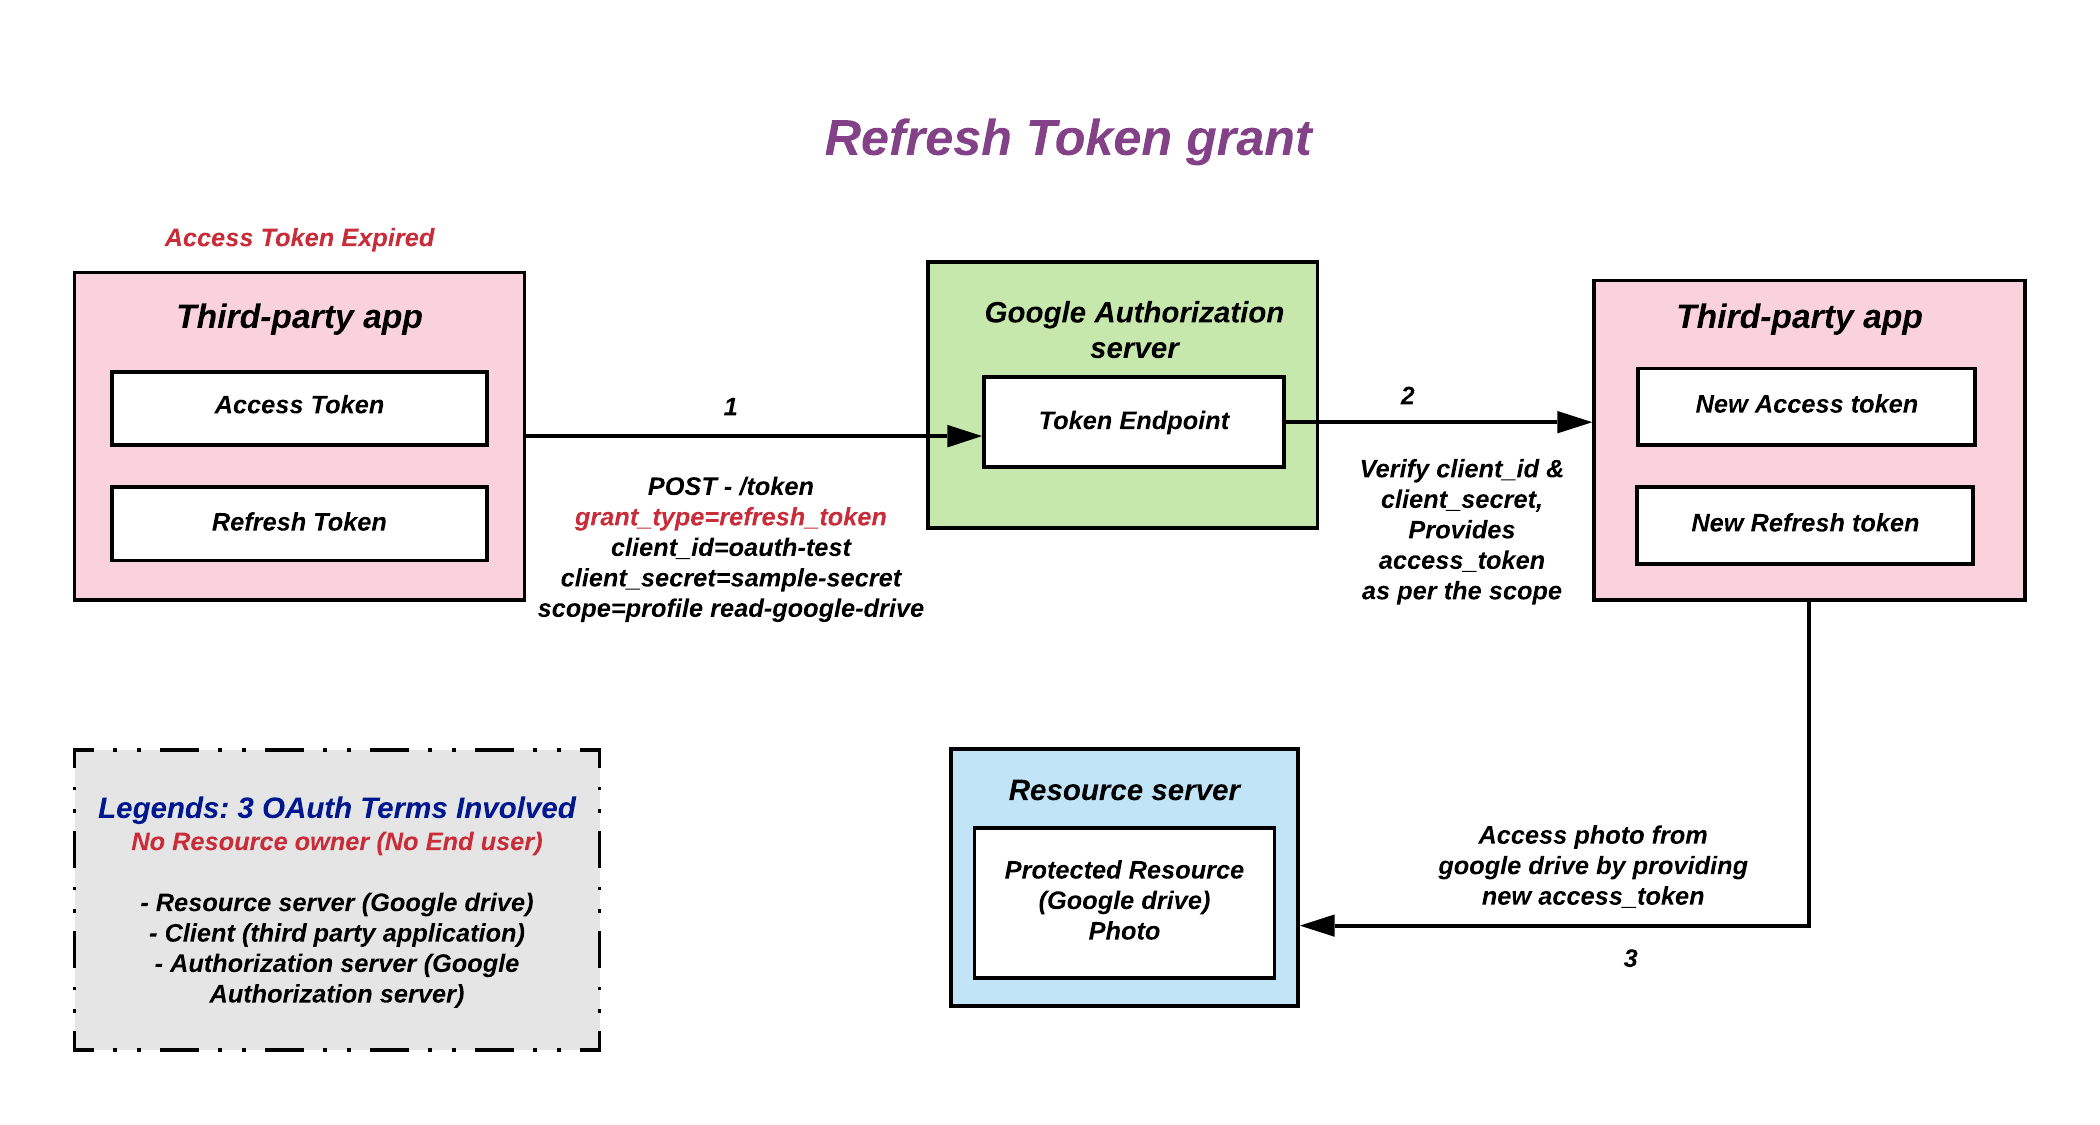 Image of Refresh token grant